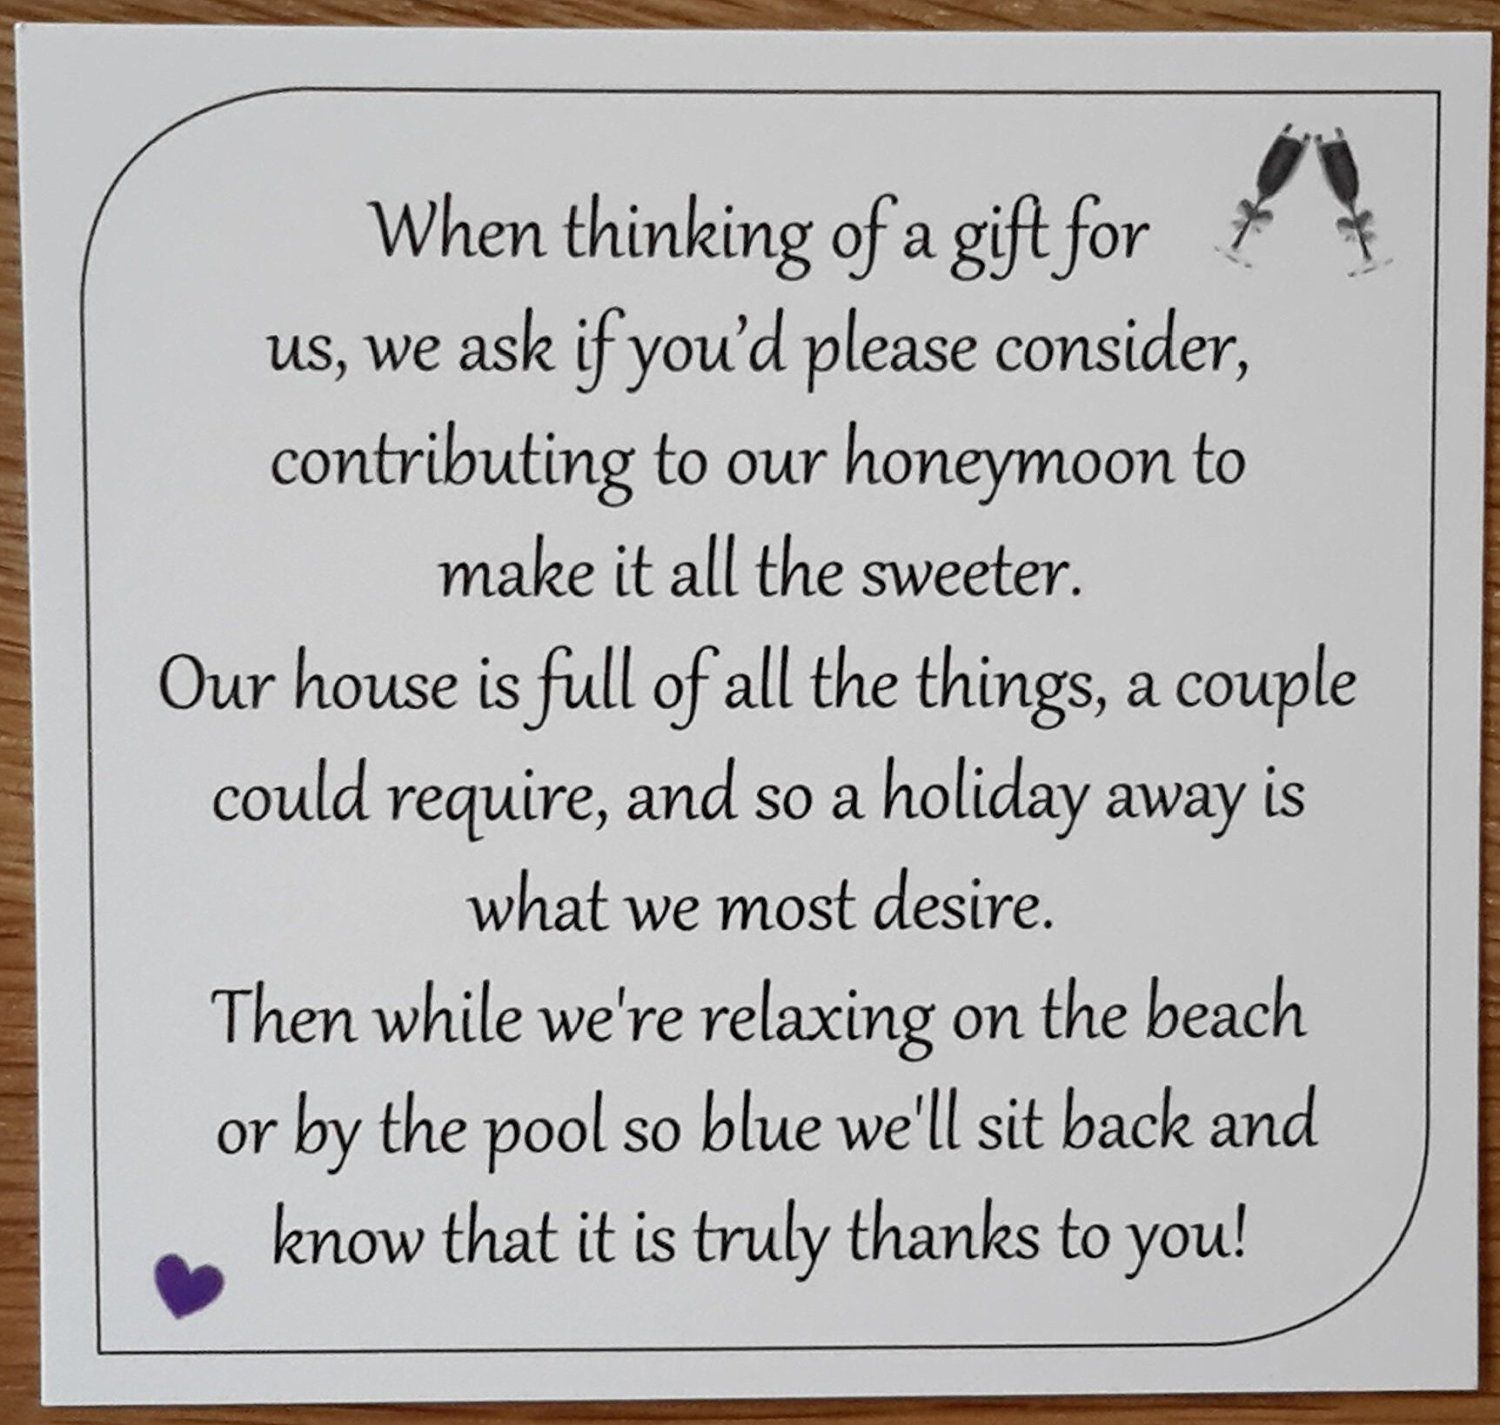 Money Request Poems - Square Honeymoon - For Wedding Invitations ...